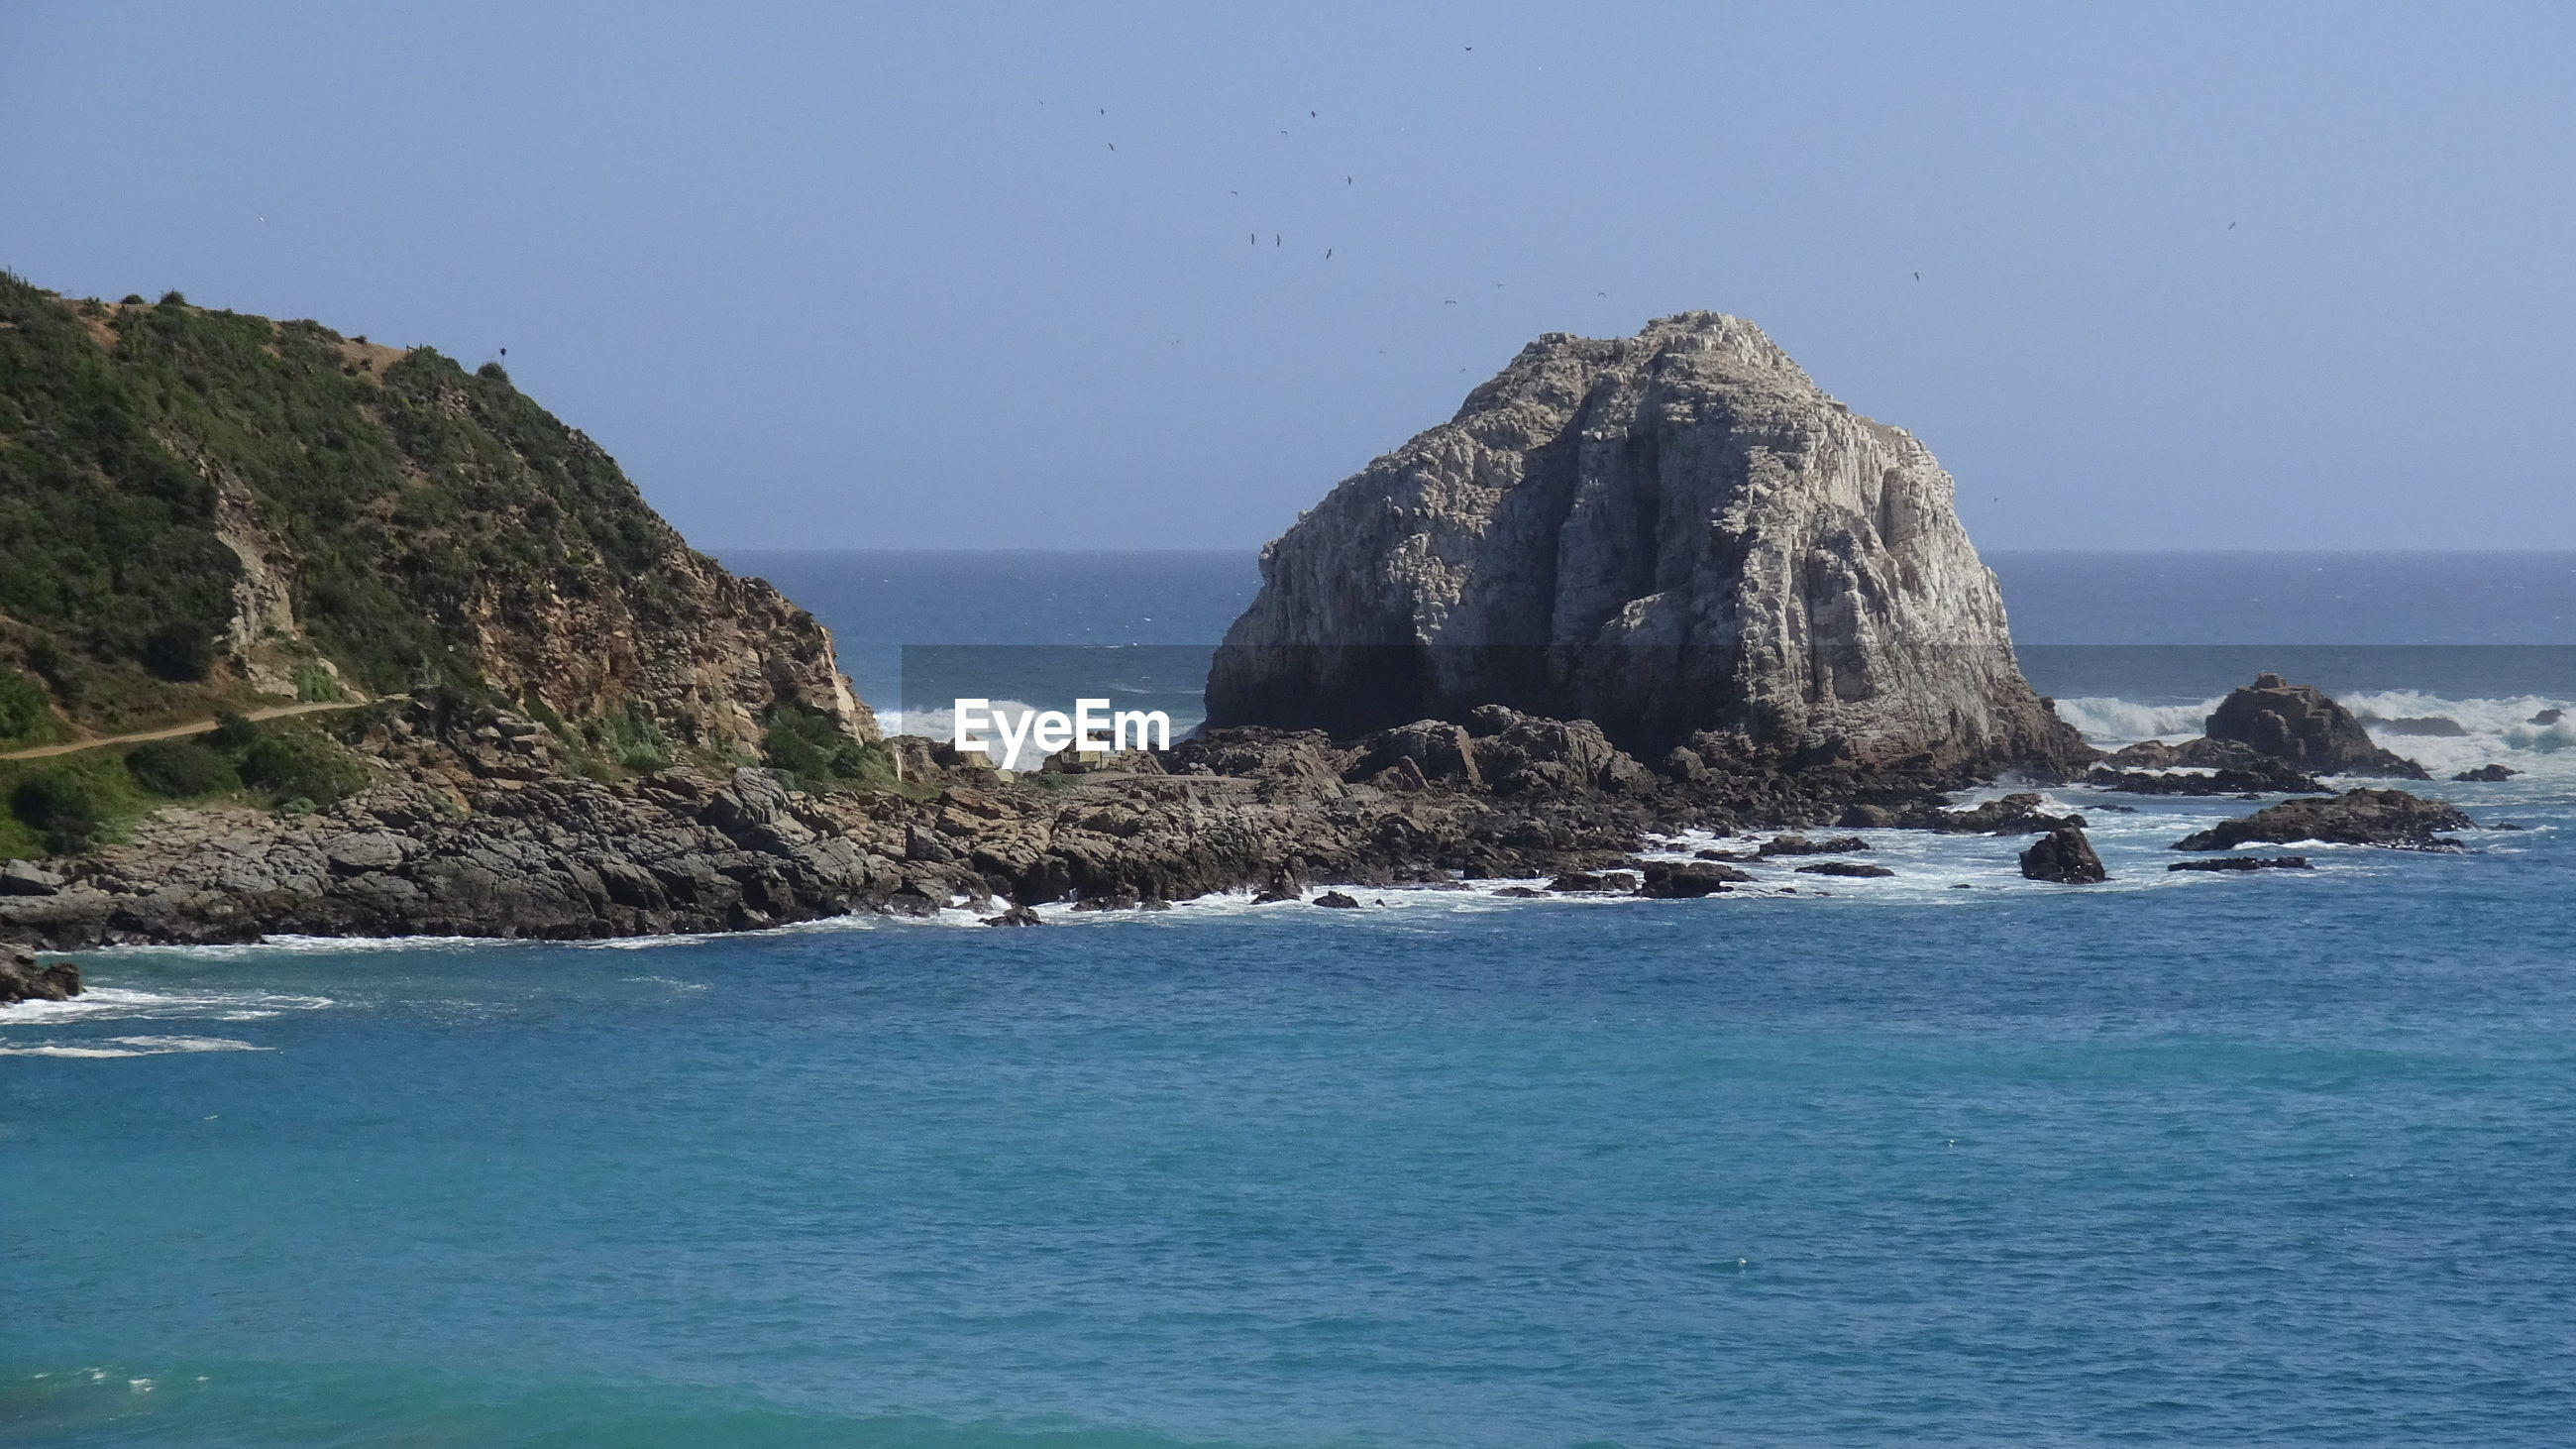 ROCK FORMATIONS IN SEA AGAINST CLEAR BLUE SKY